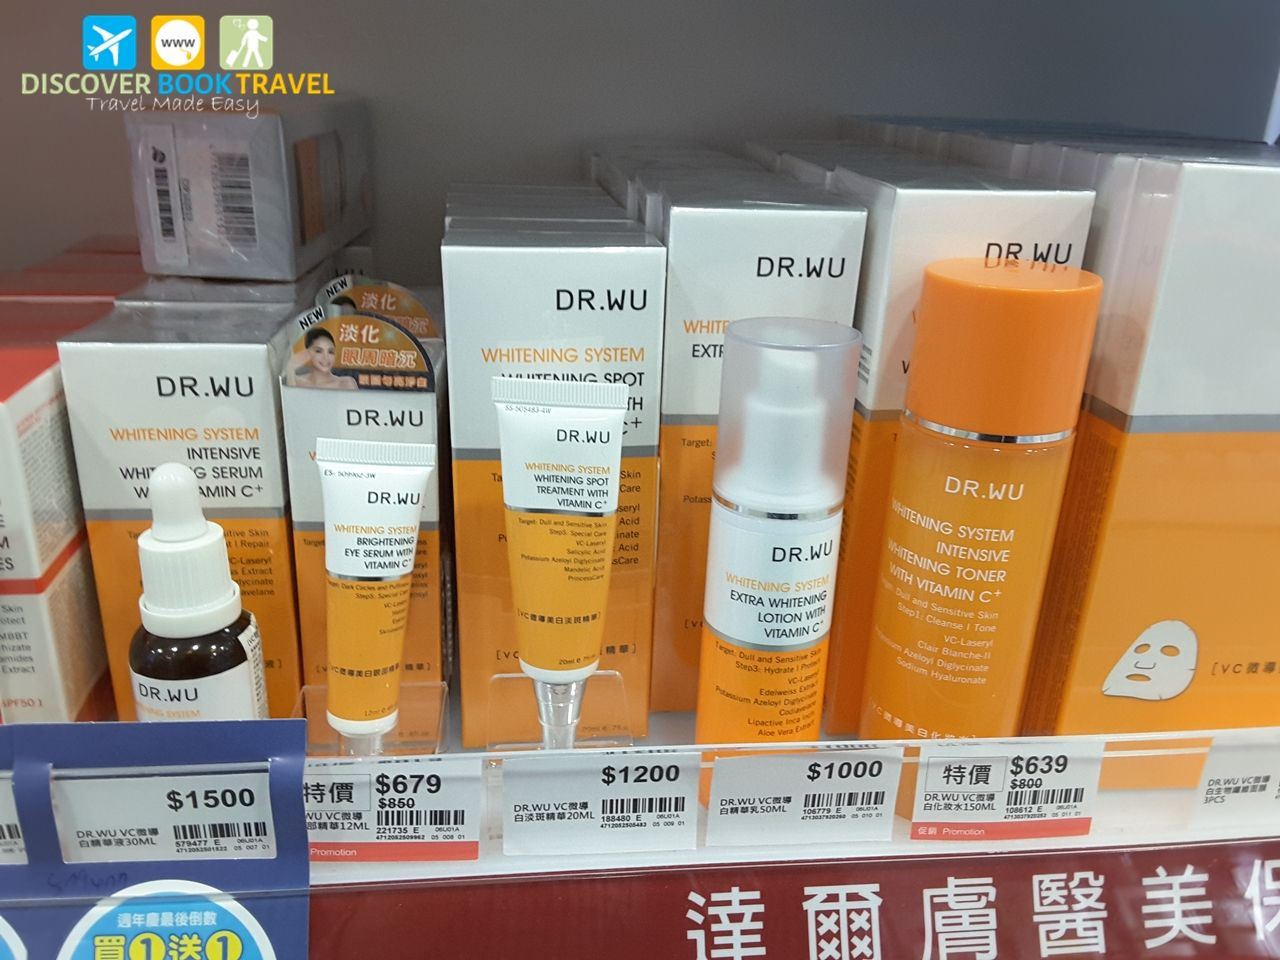 Top 10 Skincare Products To Buy In Taiwan Updated 2019 Discover Book Travel Singapore Travel Blog Taiwan Skincare Skin Care Travel Book